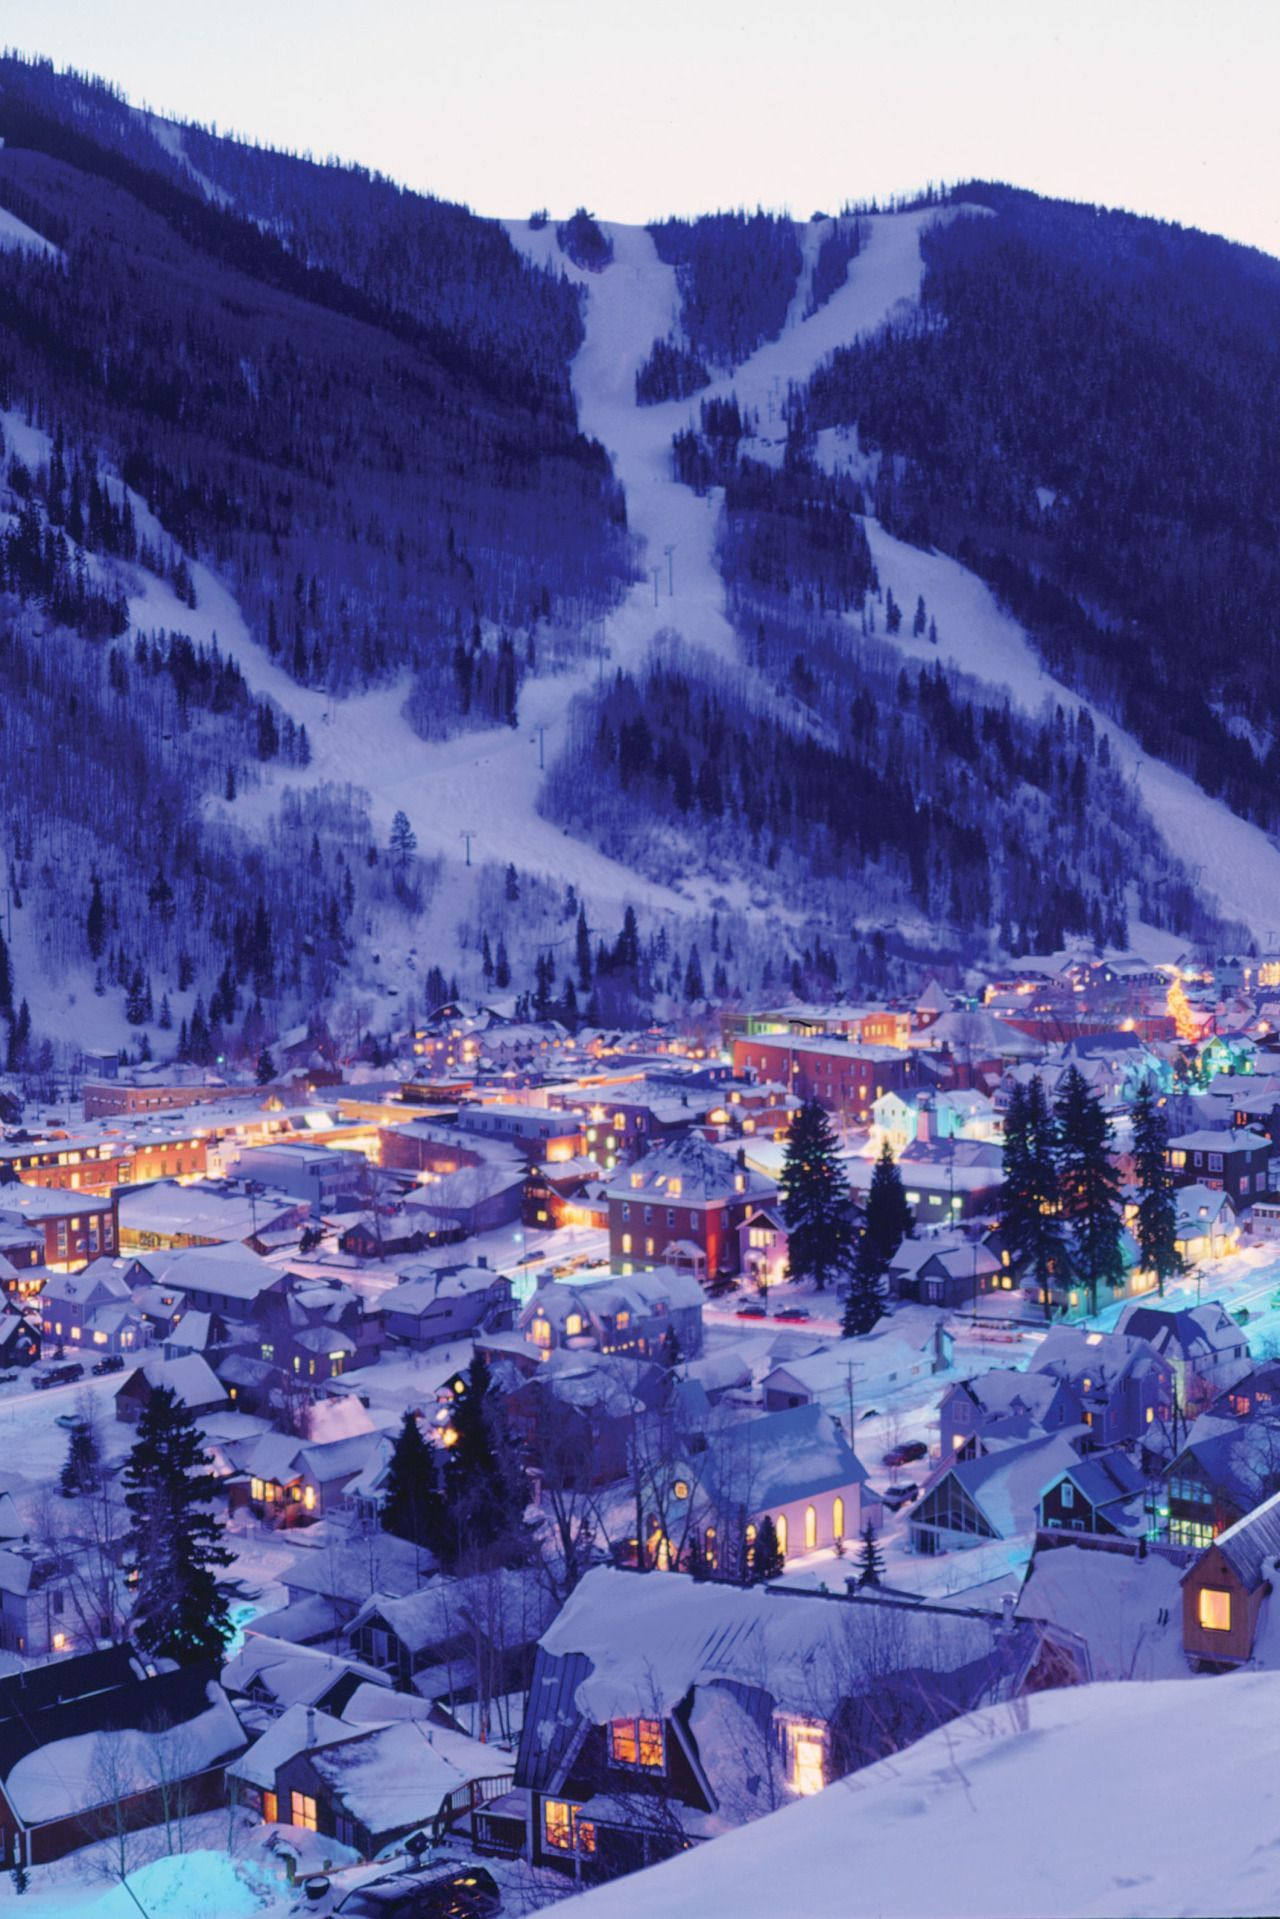 De Preciated Night Lights In The Town Of Telluride And Torchlight Parade On Slopes Ski Area By Visit Colorado Photo Doug Berry Group